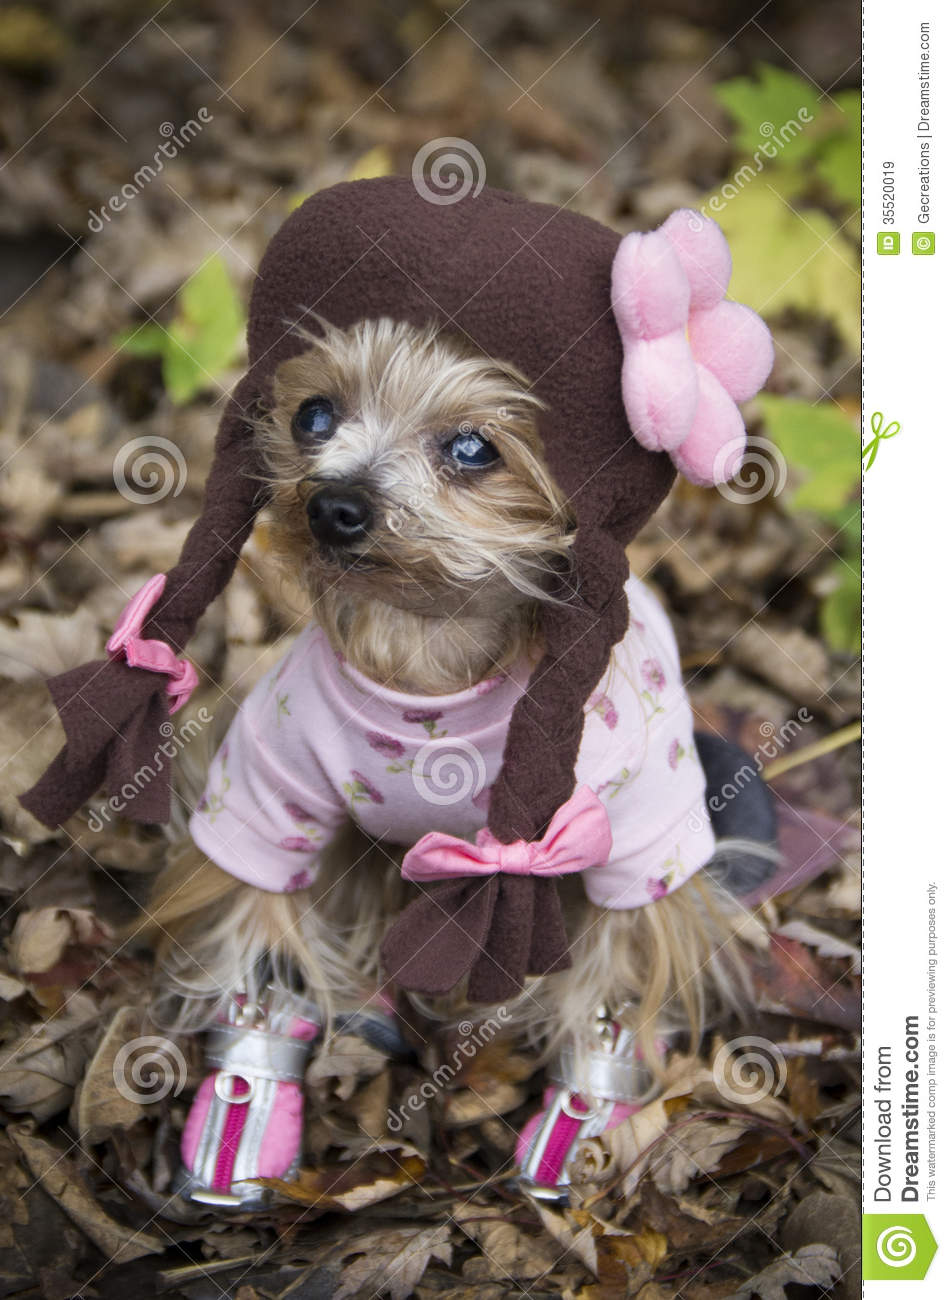 Girl Puppy Halloween Costume